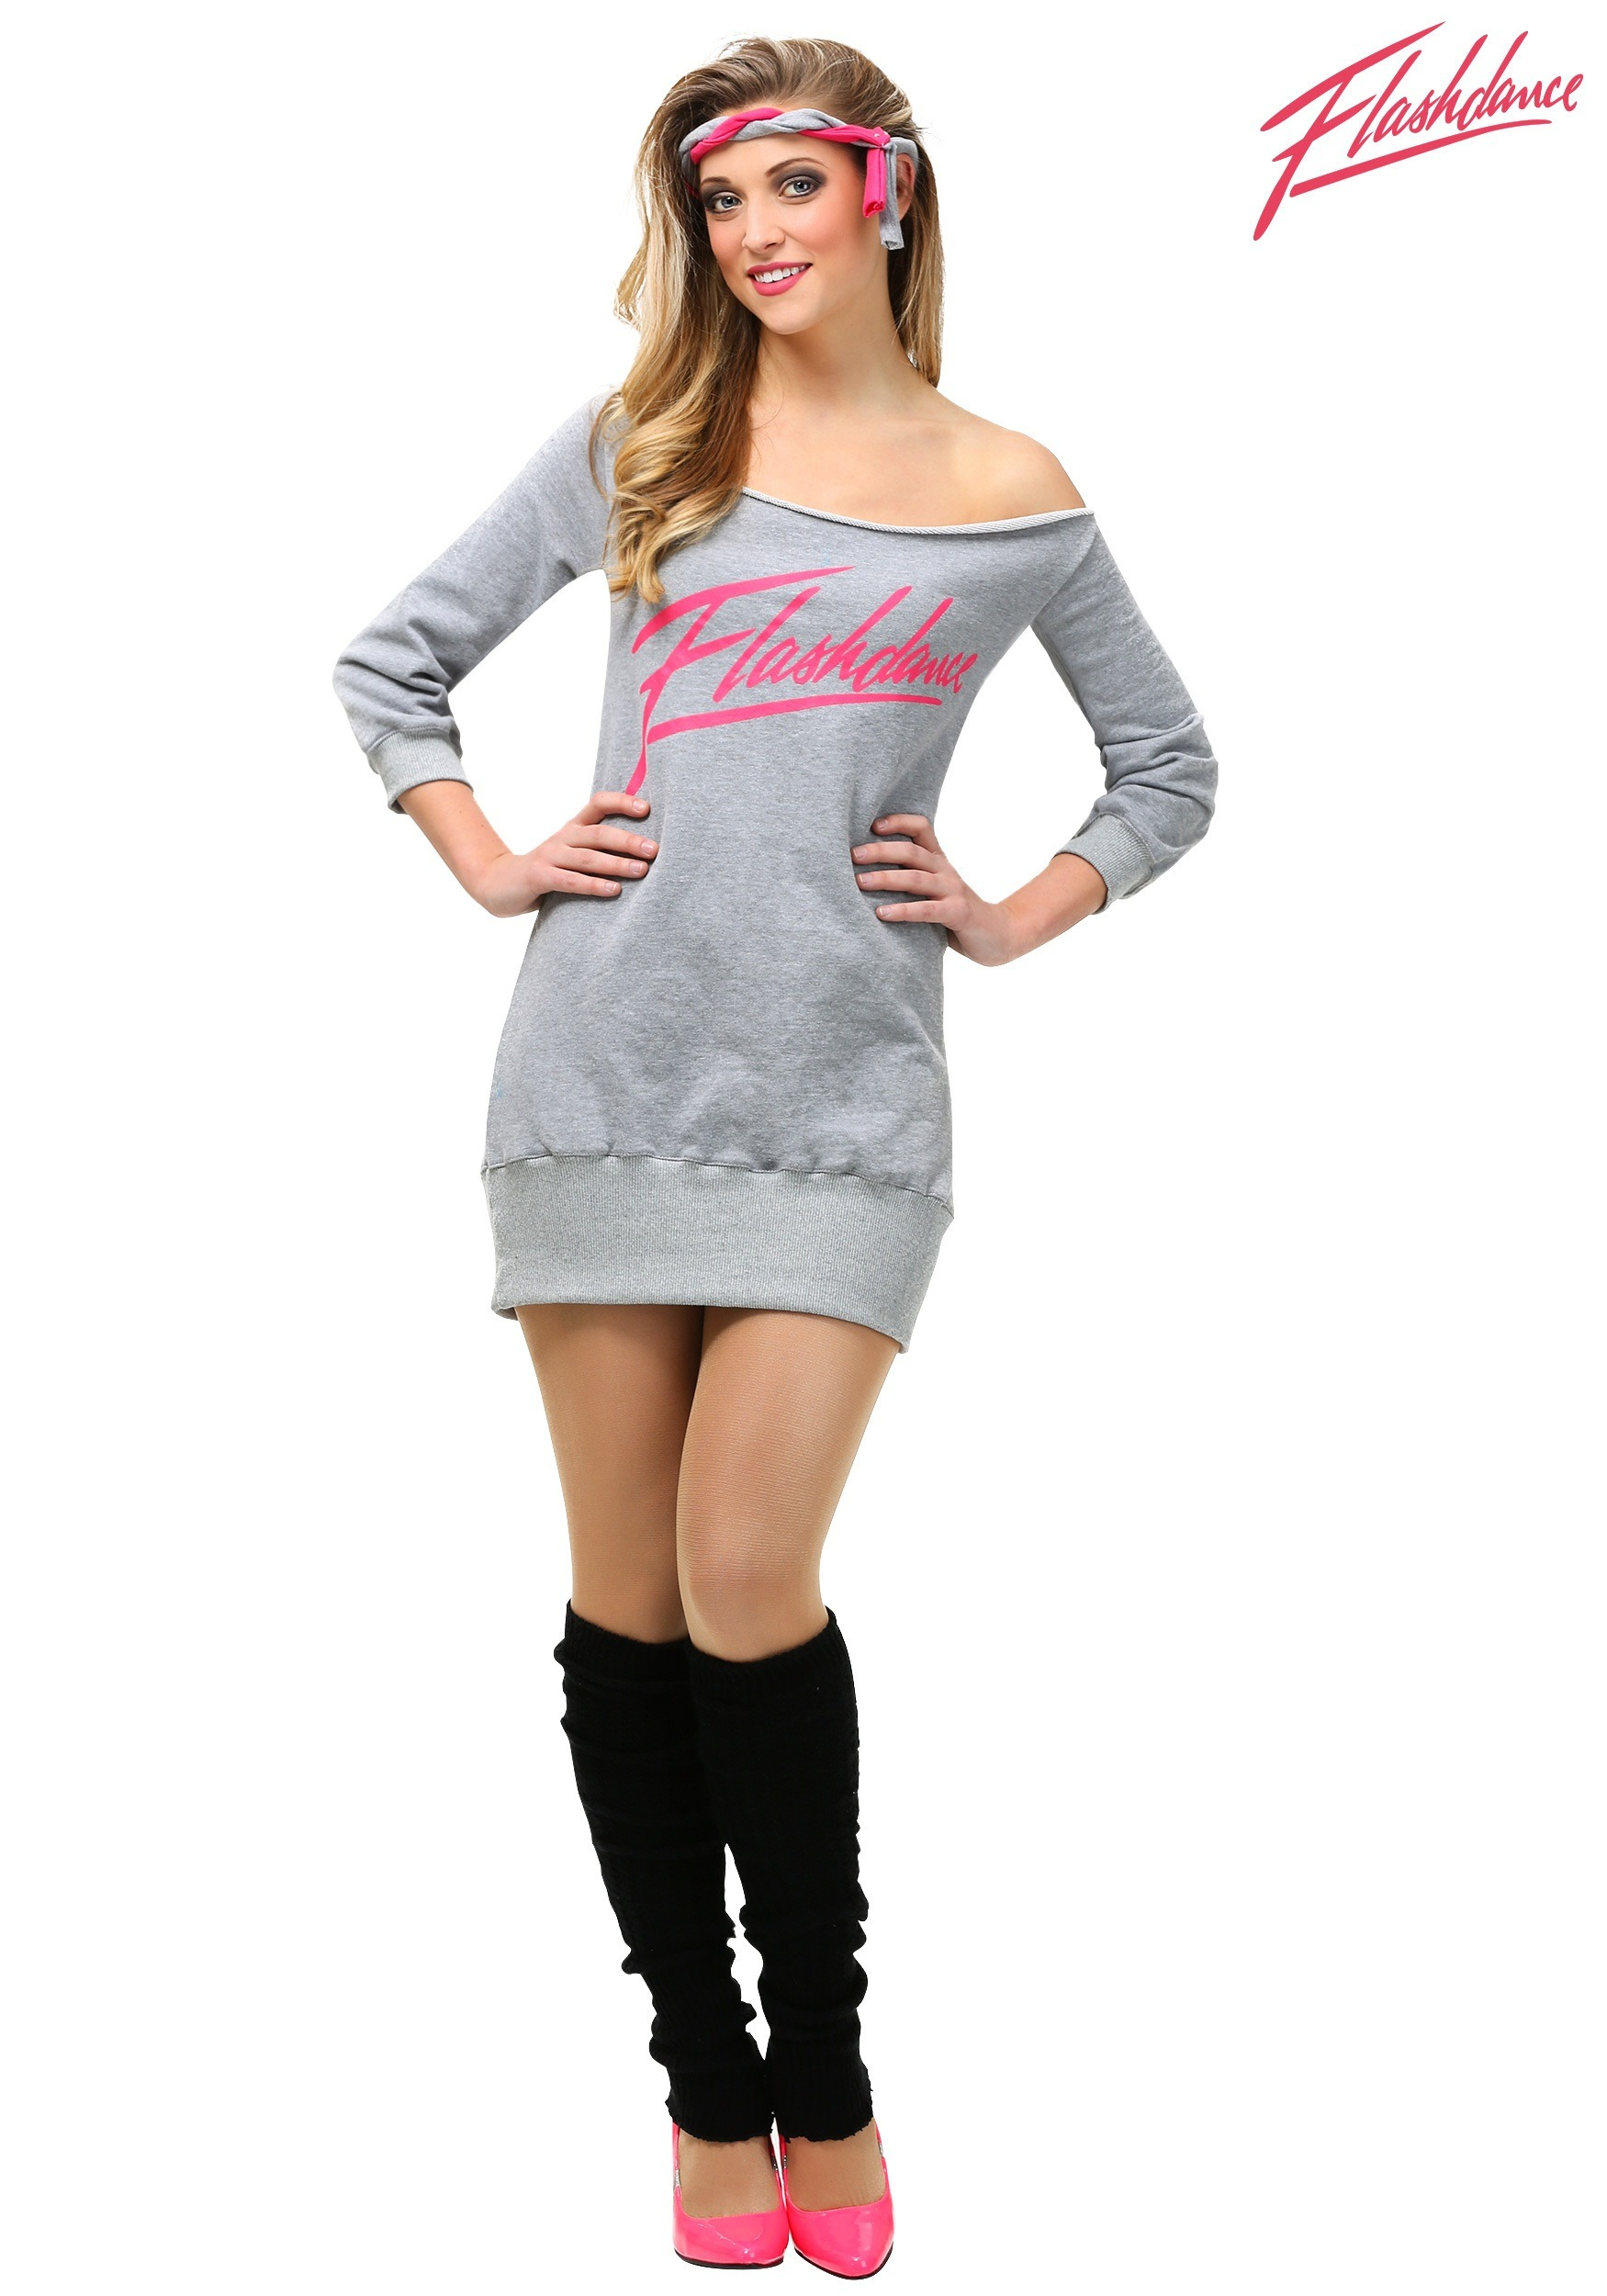 Women's Flashdance Costume